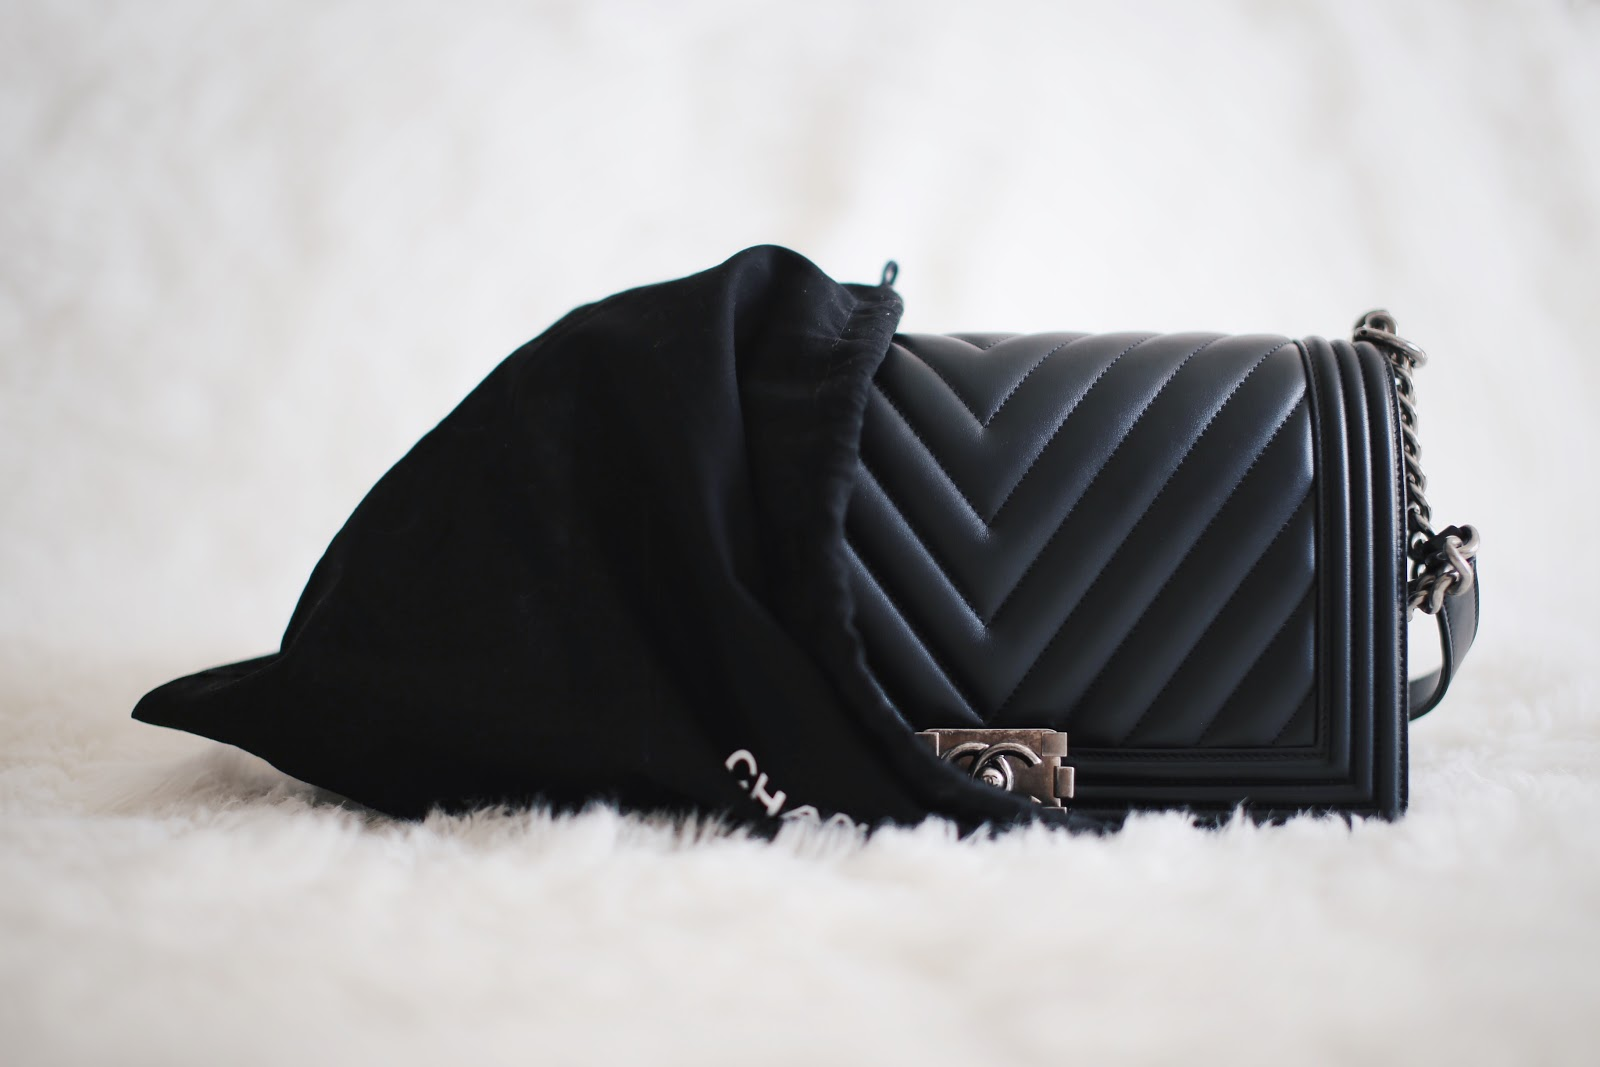 f3bab0942fc2ce Now let's get to the good stuff: Black Chevron Quilted Lambskin and  Ruthenium Hardware Chanel Le Boy, in the new medium size.